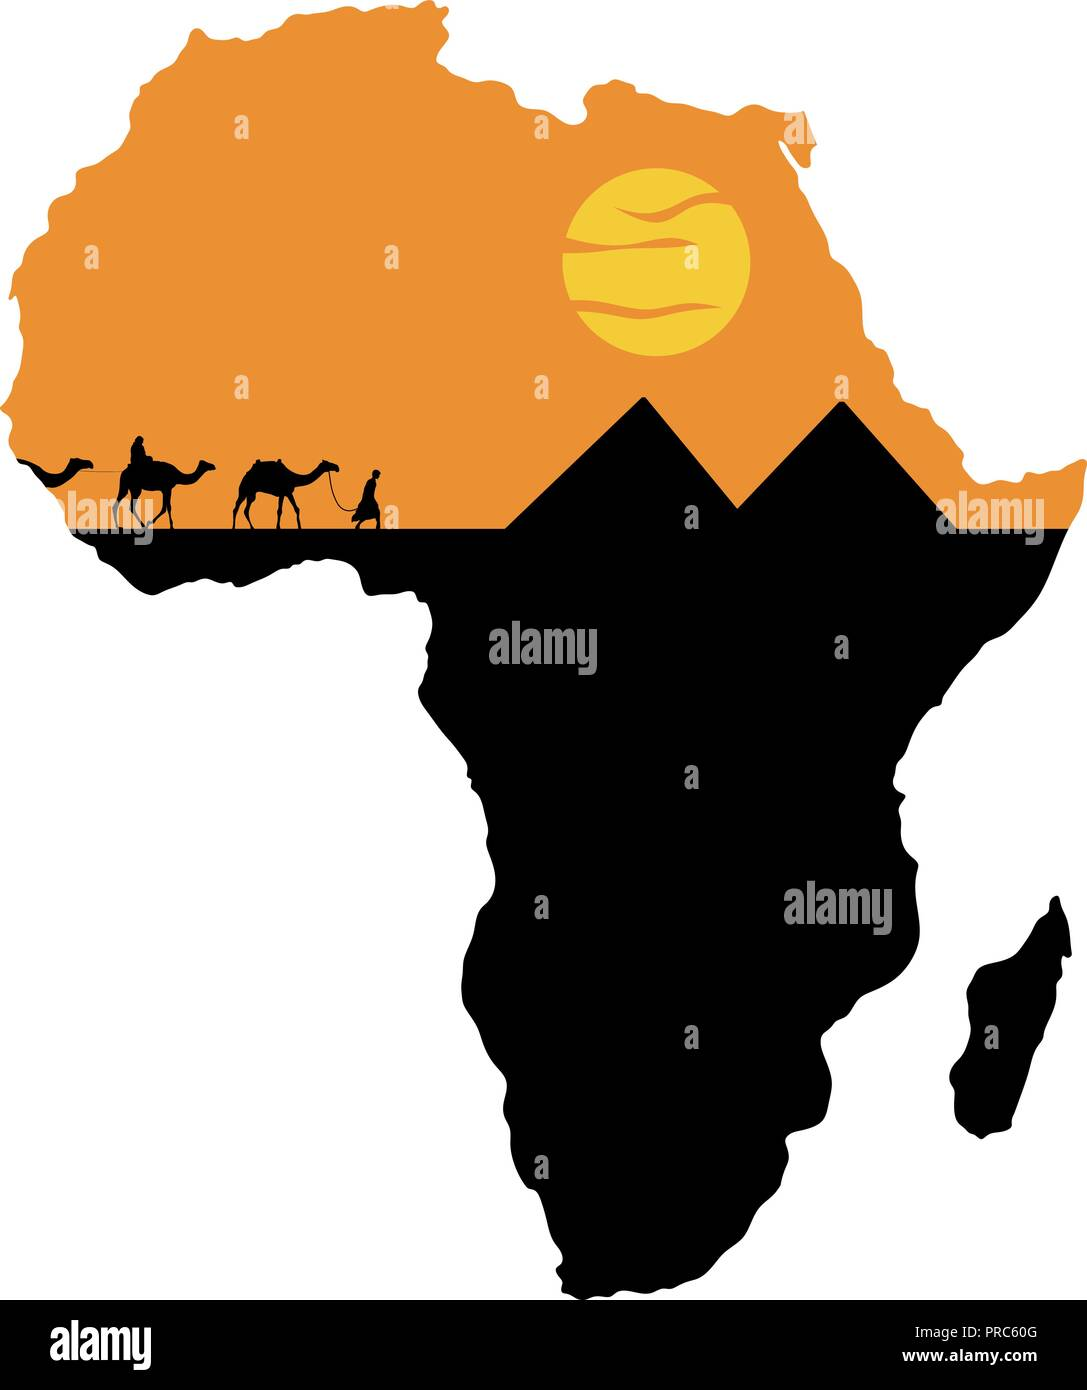 Caravan and pyramids on the background of Africa map - Stock Image